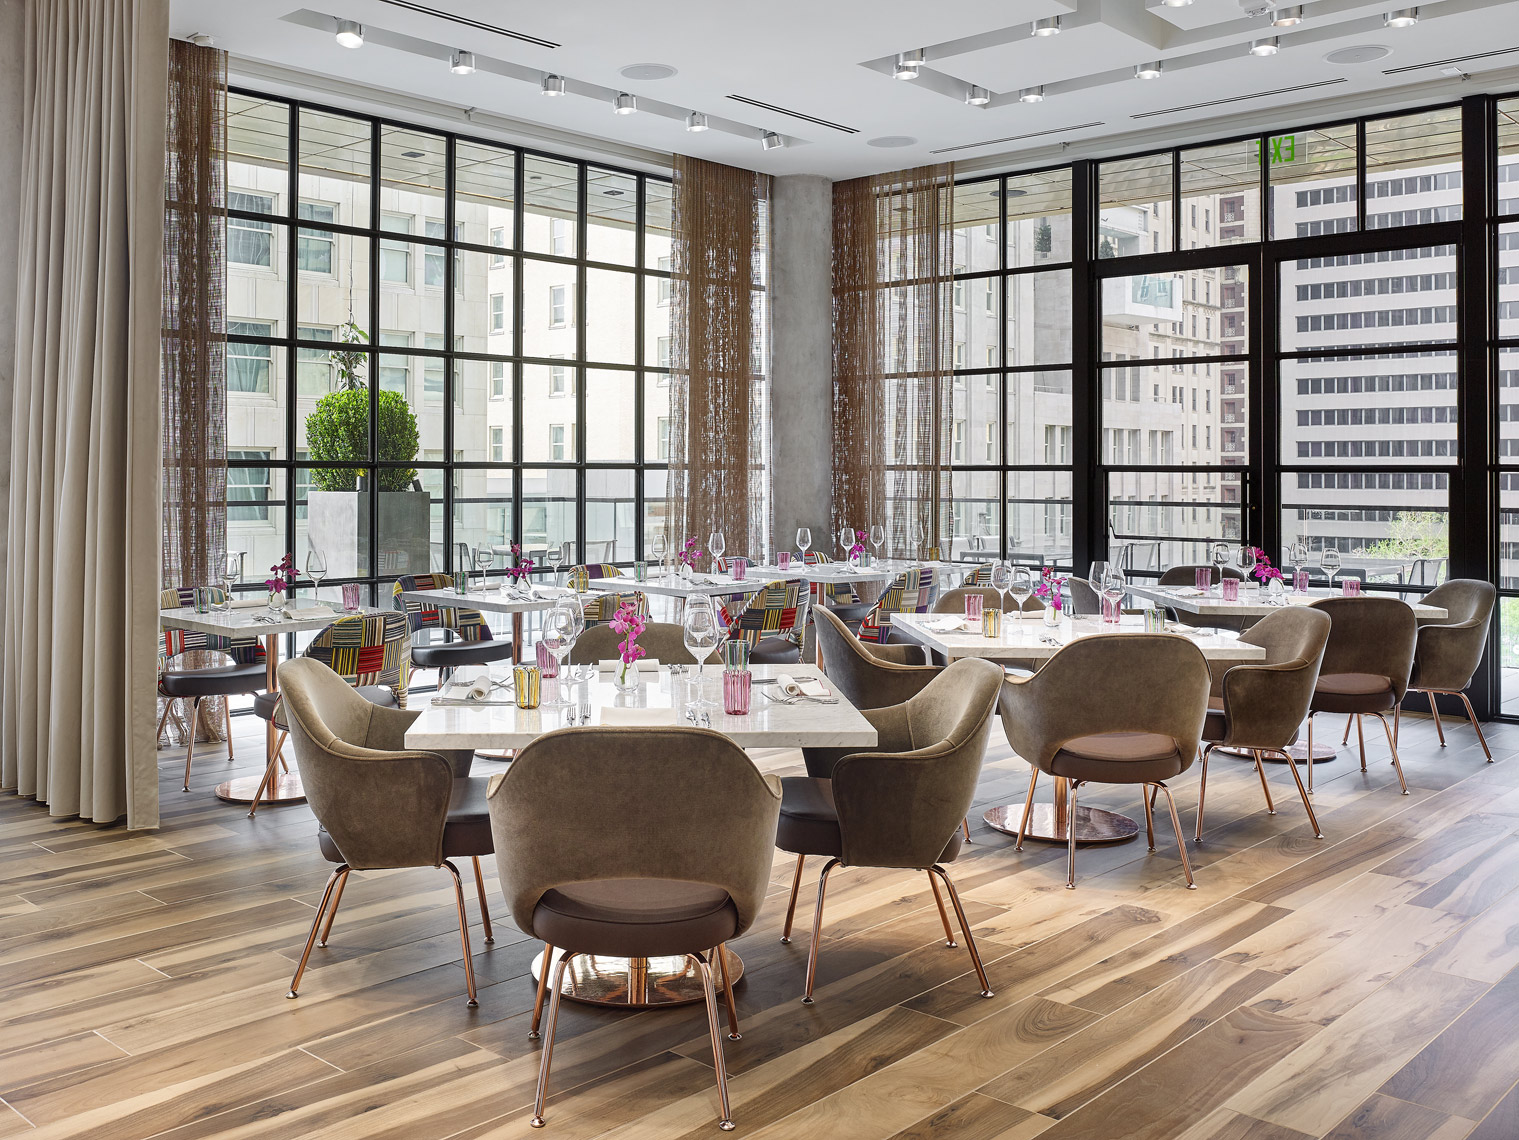 Stephen Karlisch Forty Five Ten Restaurant Seating